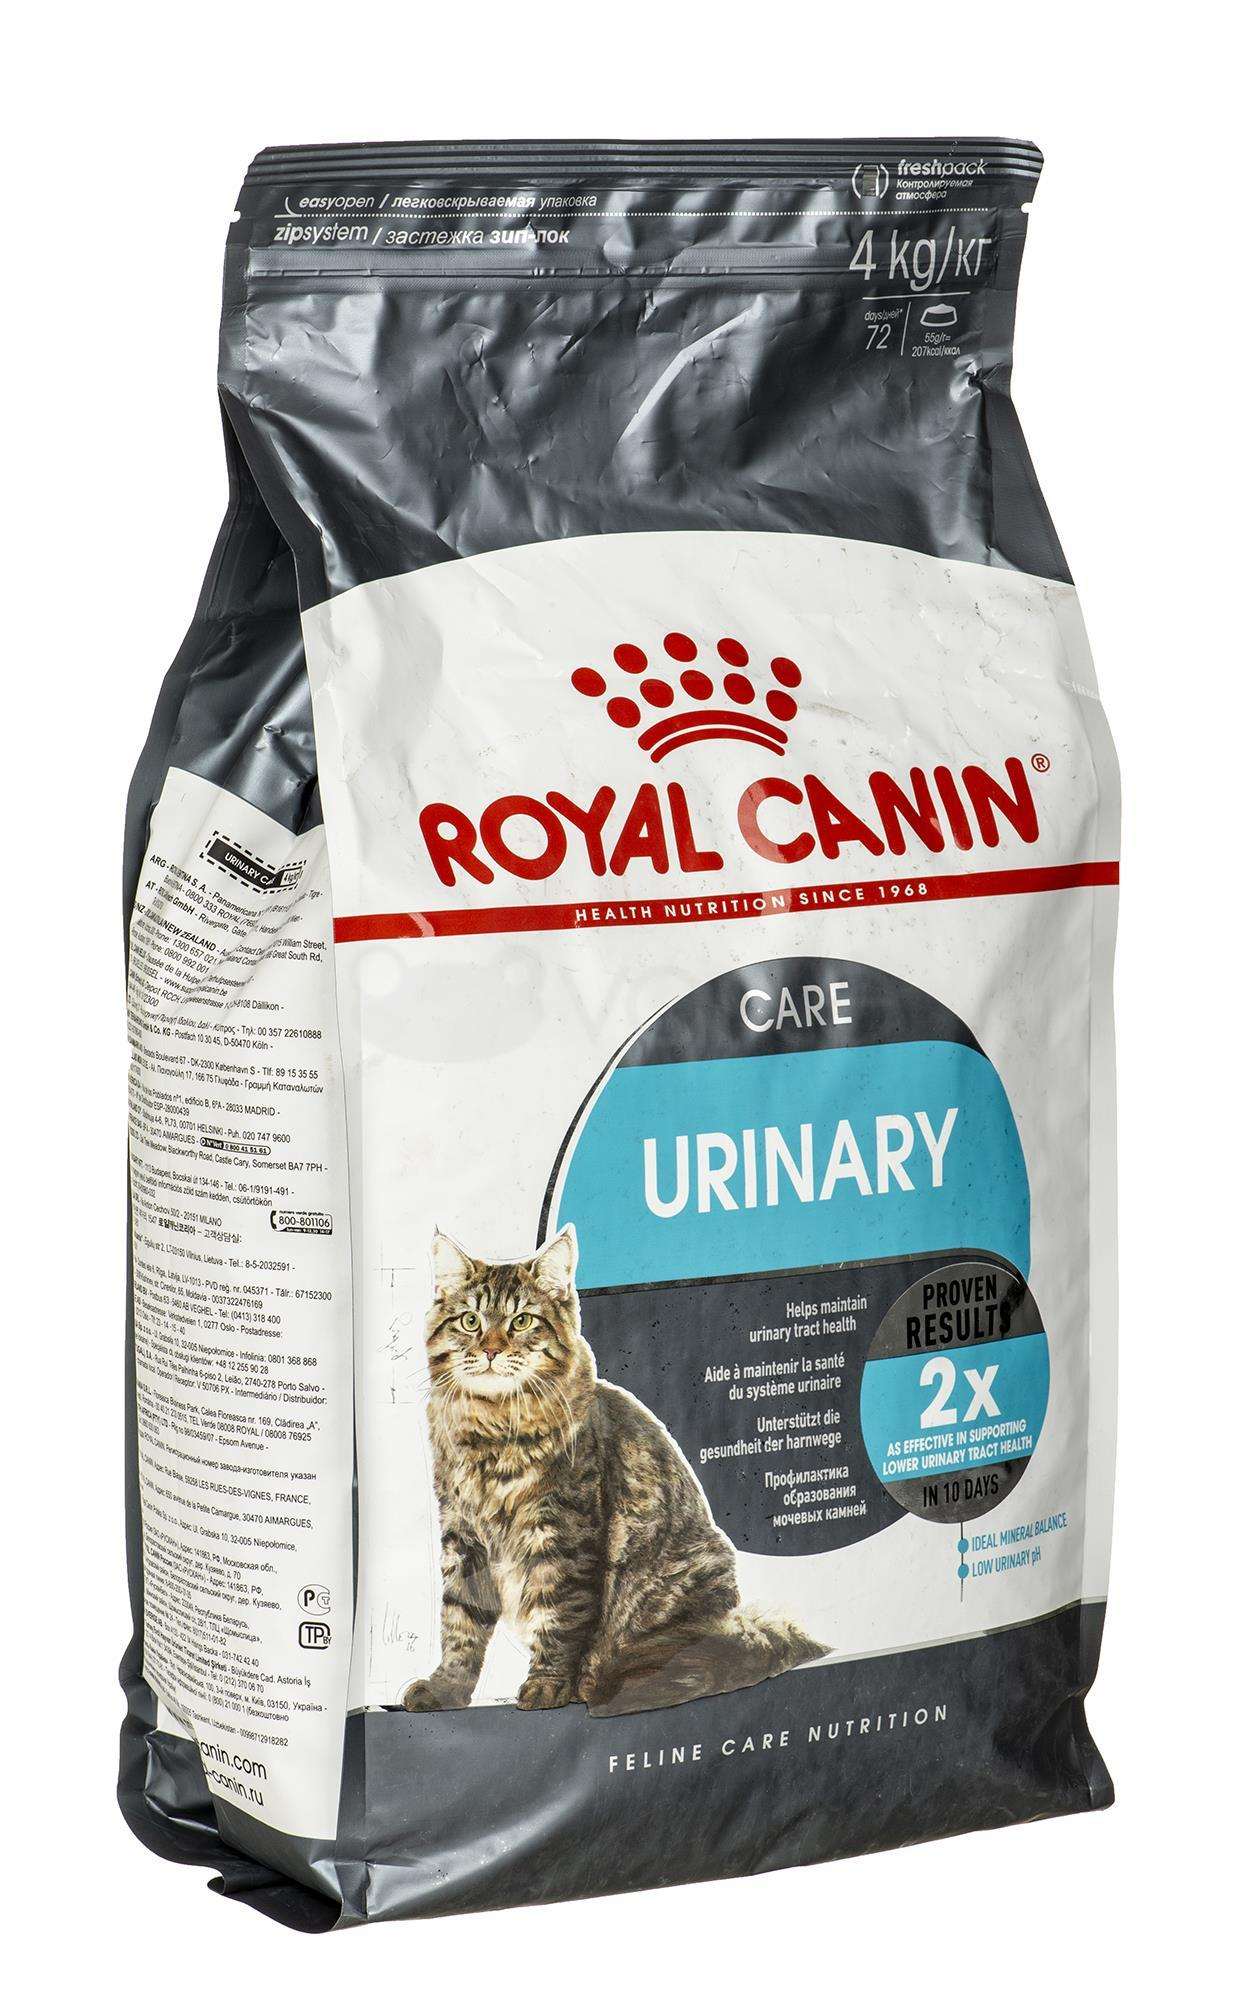 Kačių maistas Royal Canin Urinary Care 10kg.